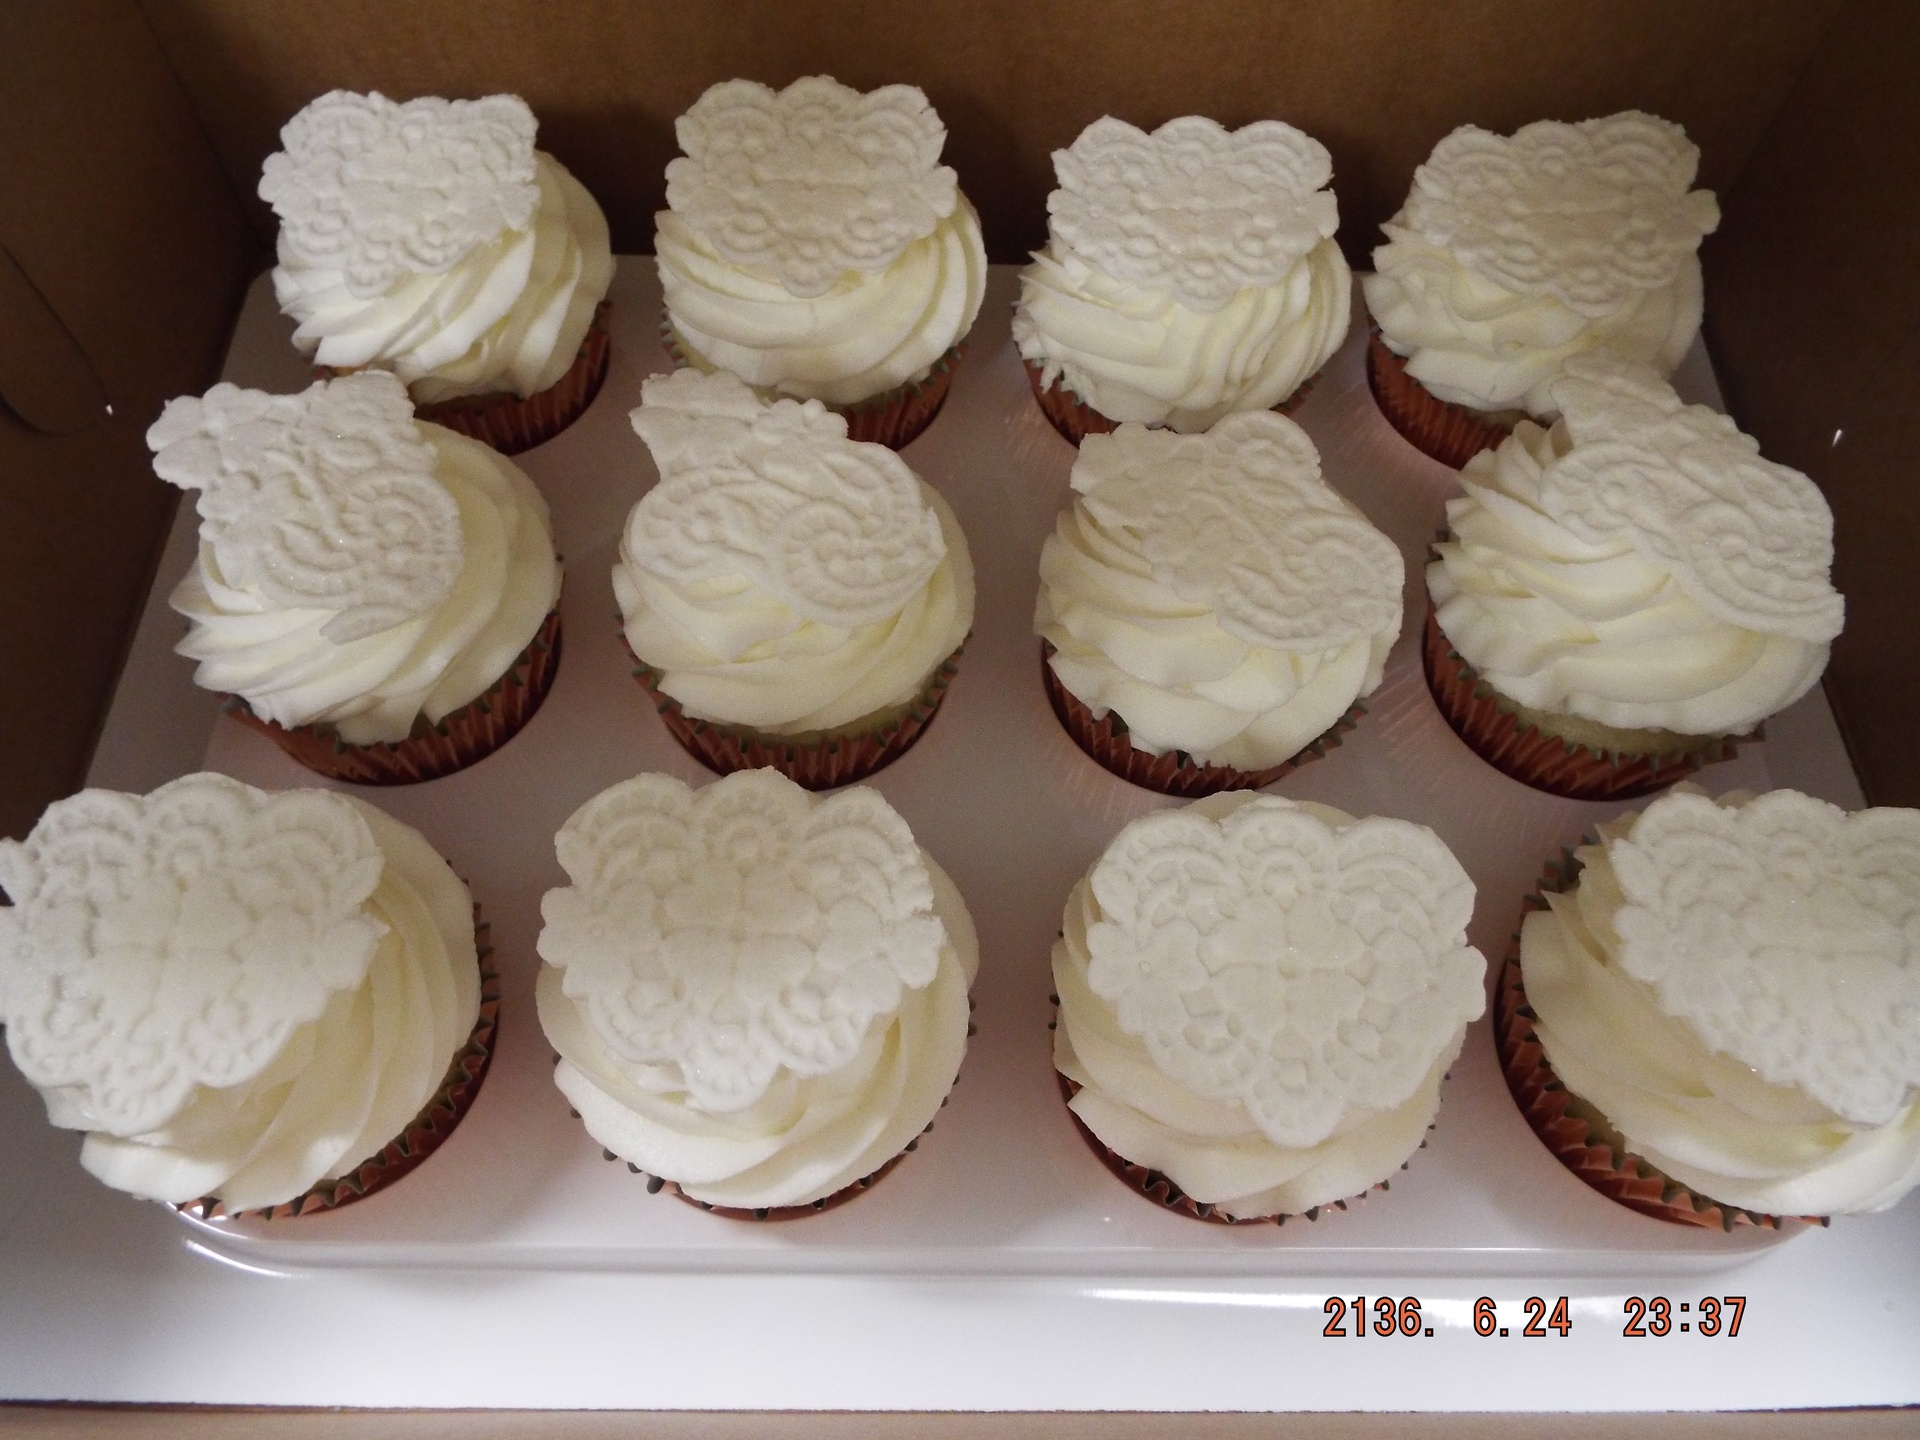 fondant lace topper cupcakes $3.50/each